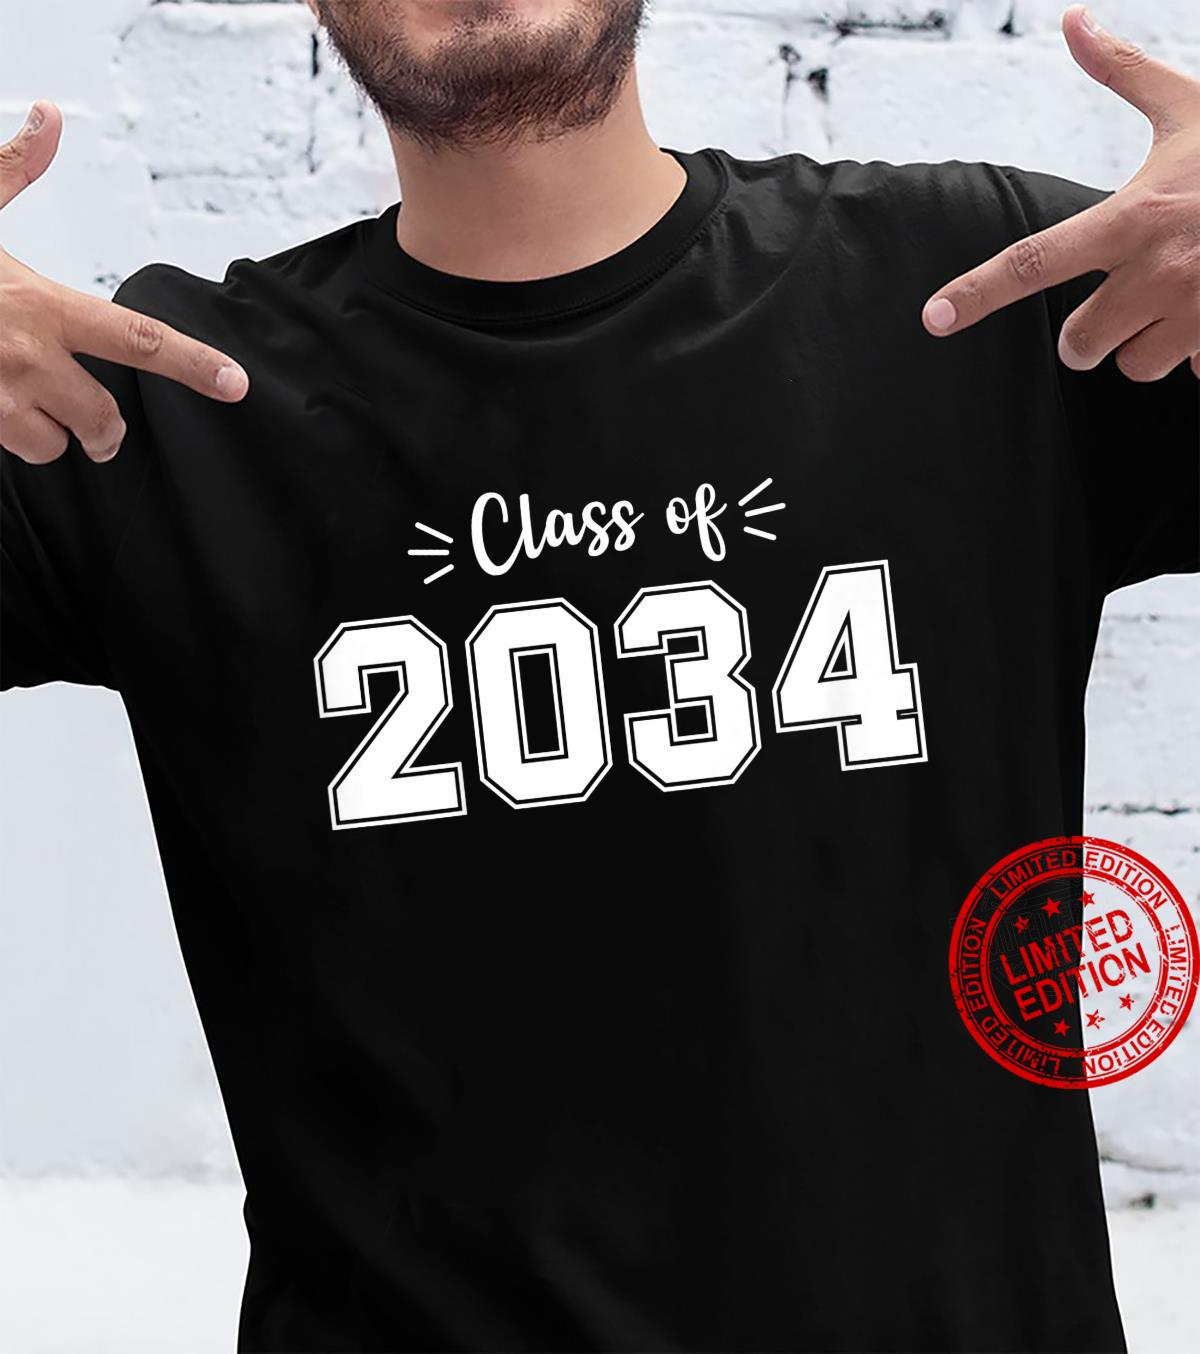 Kids Kindergarten 2021 Class of 2034 grow with me Youth Student Shirt